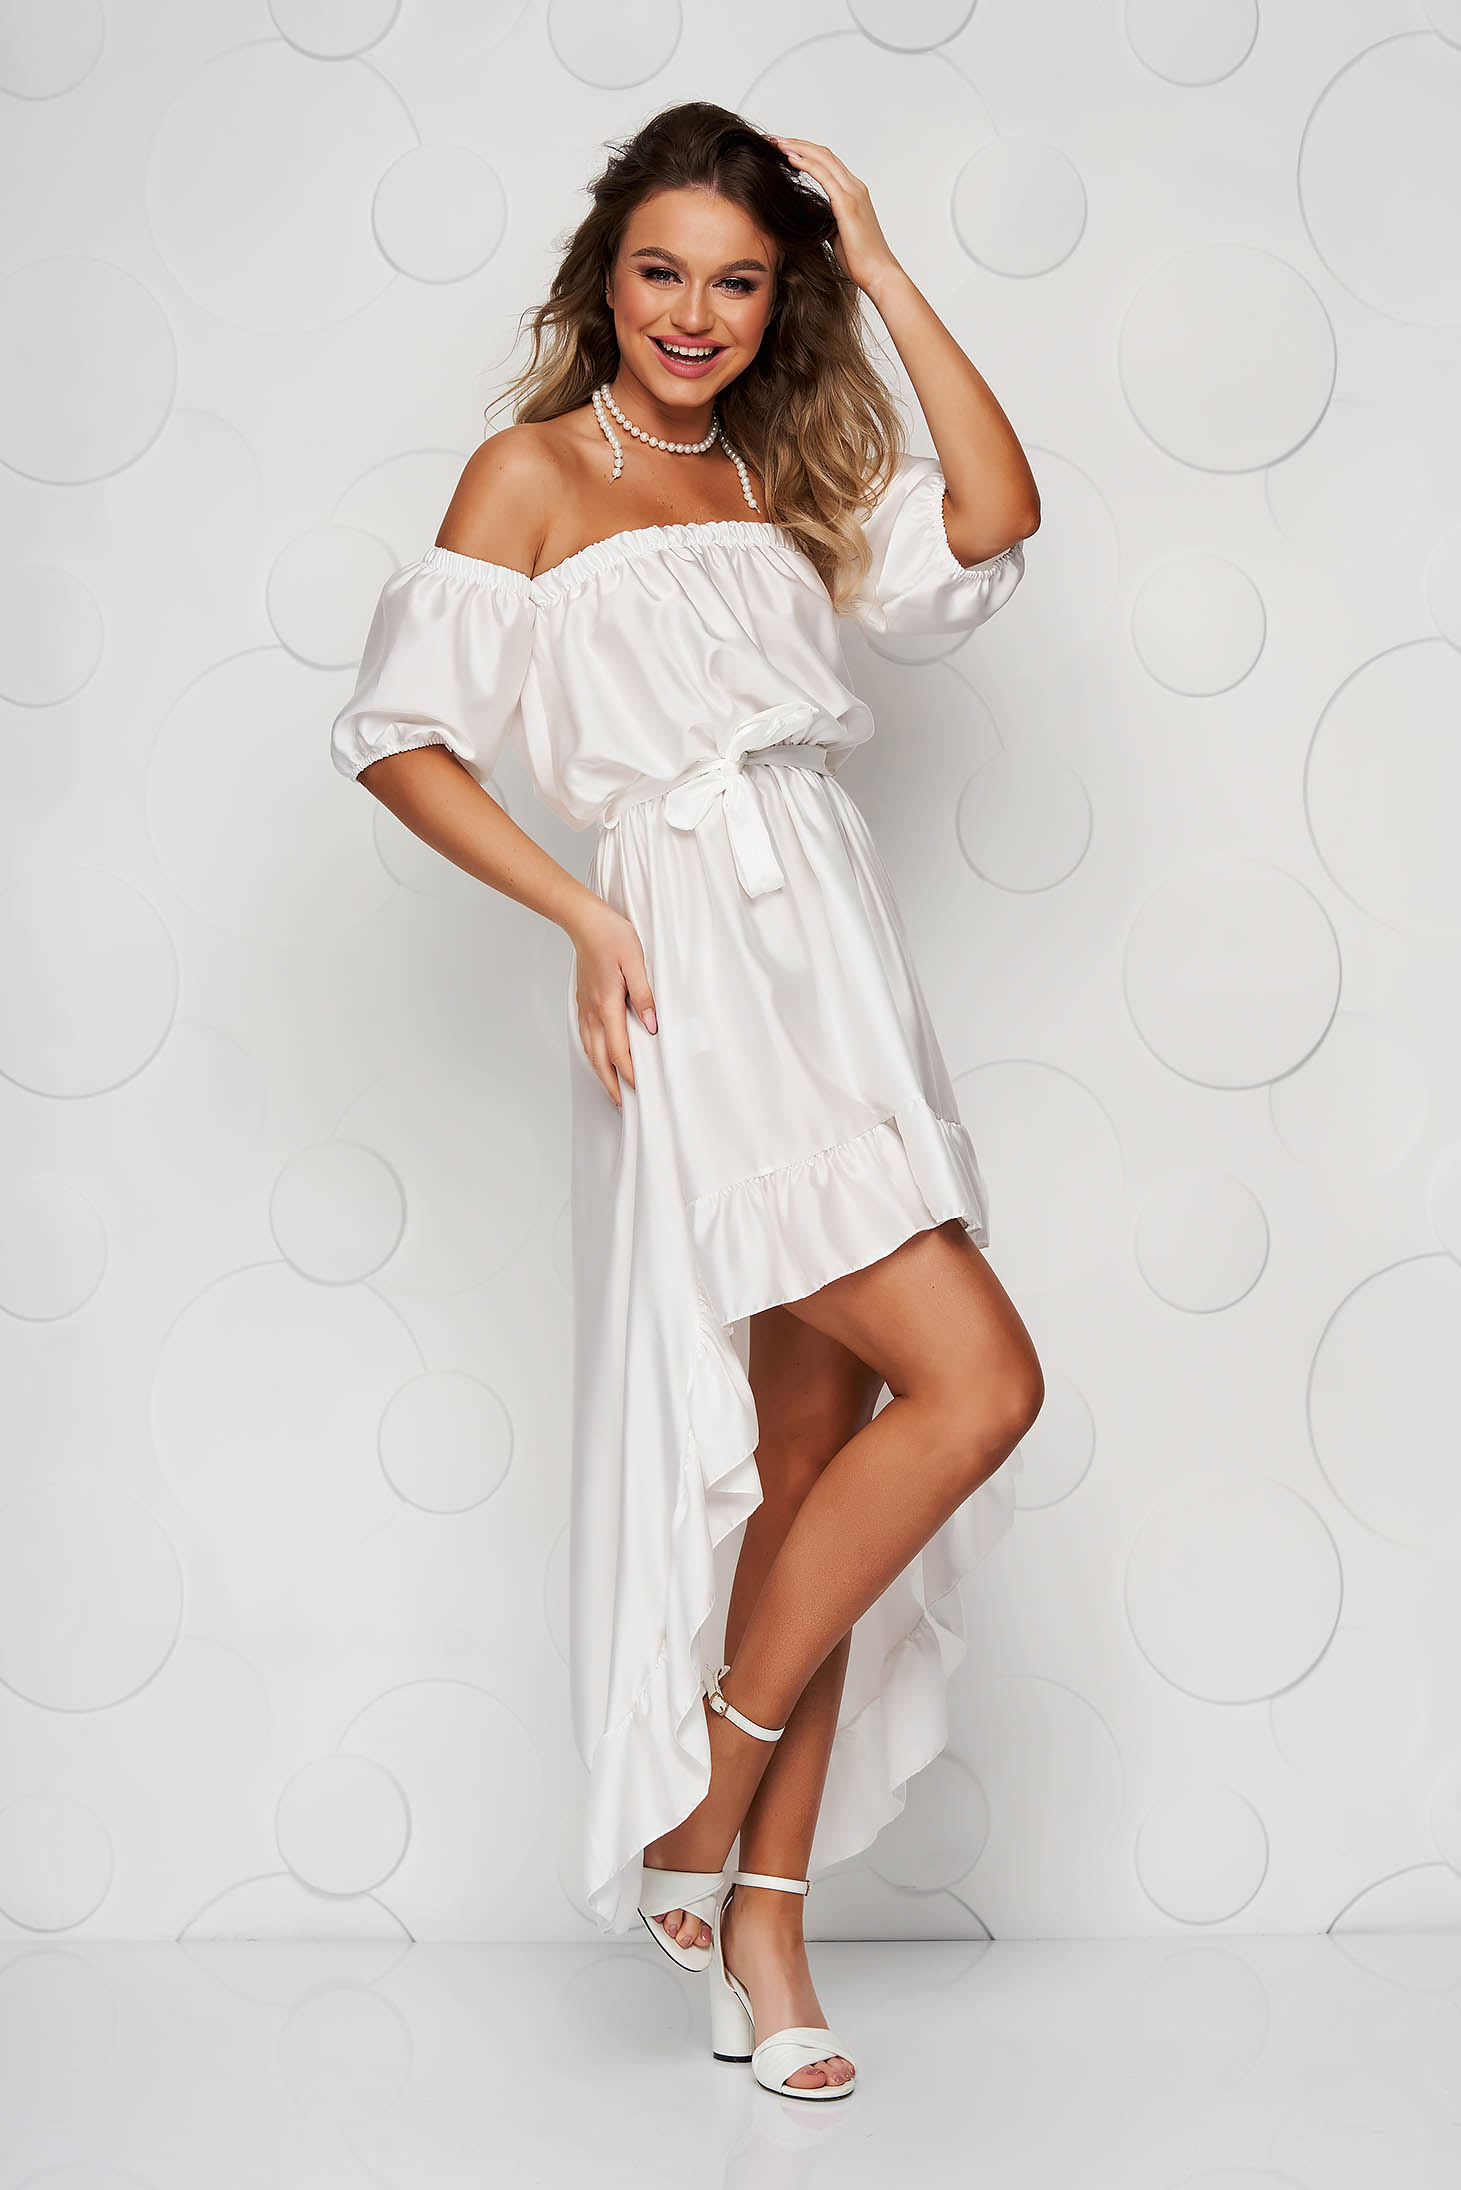 White dress from satin cloche with elastic waist asymmetrical with ruffle details on the shoulders